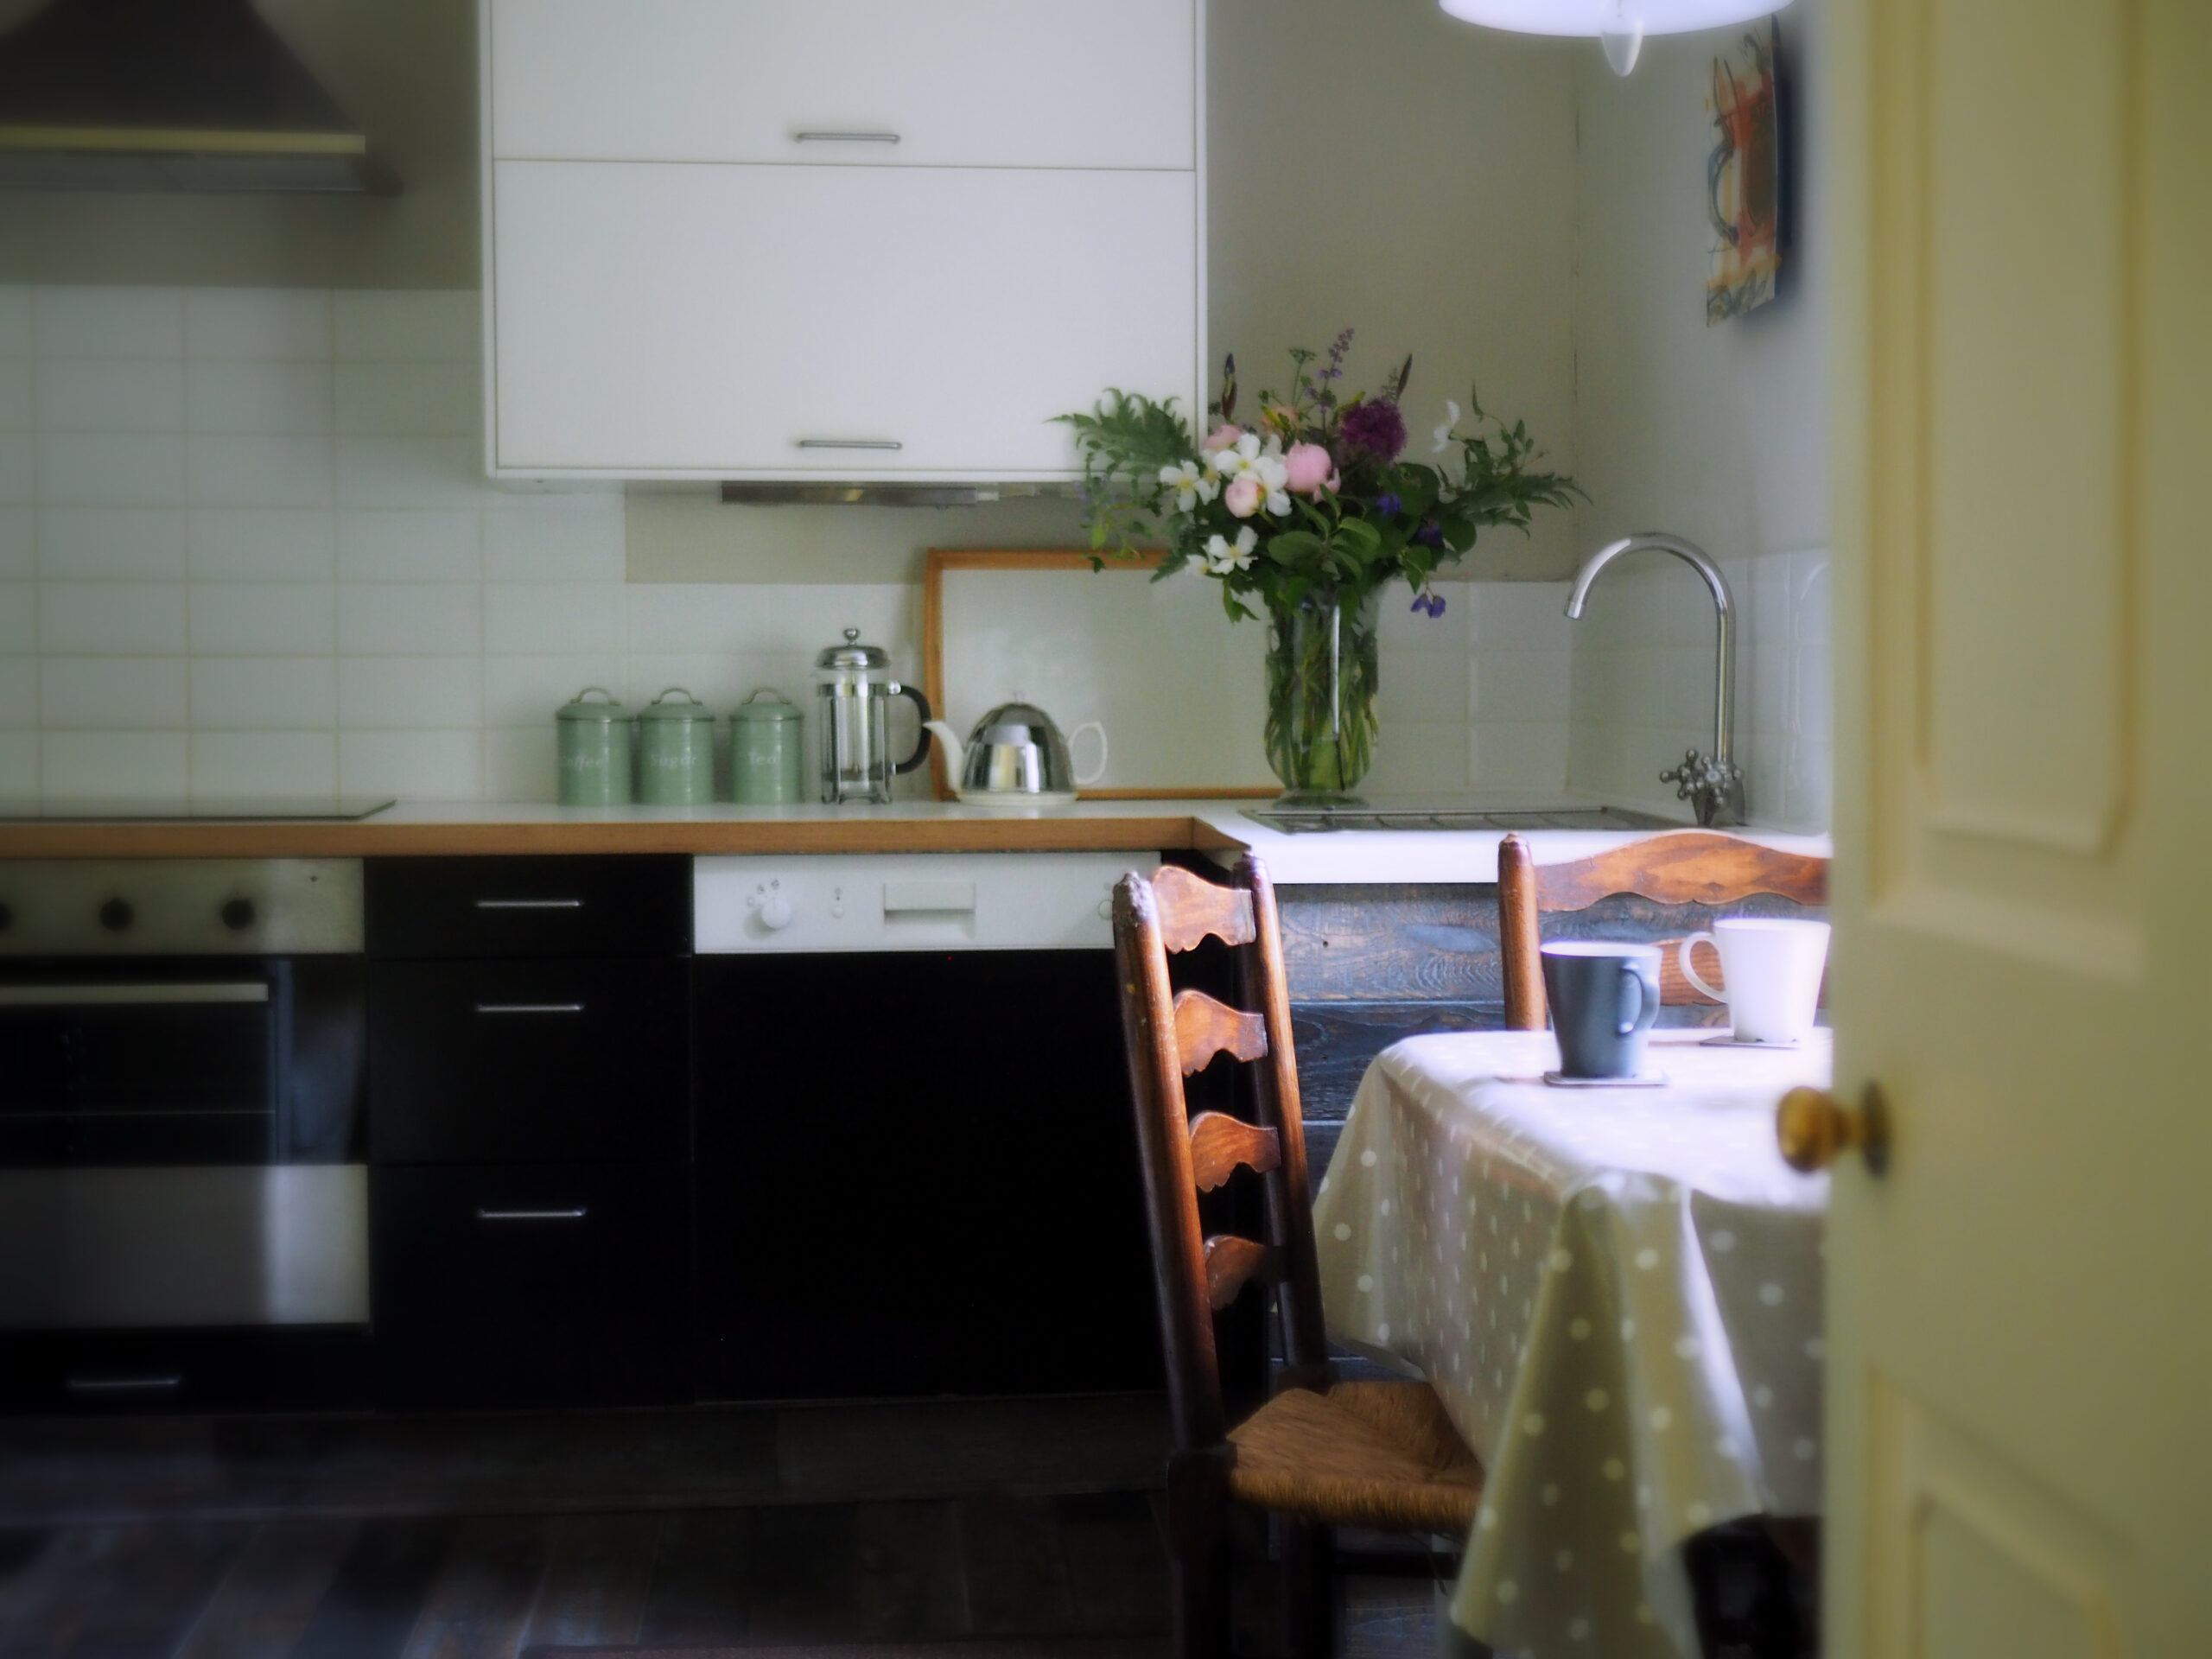 Modern-and-well-equipped-kitchen-for-light-meals-and-more